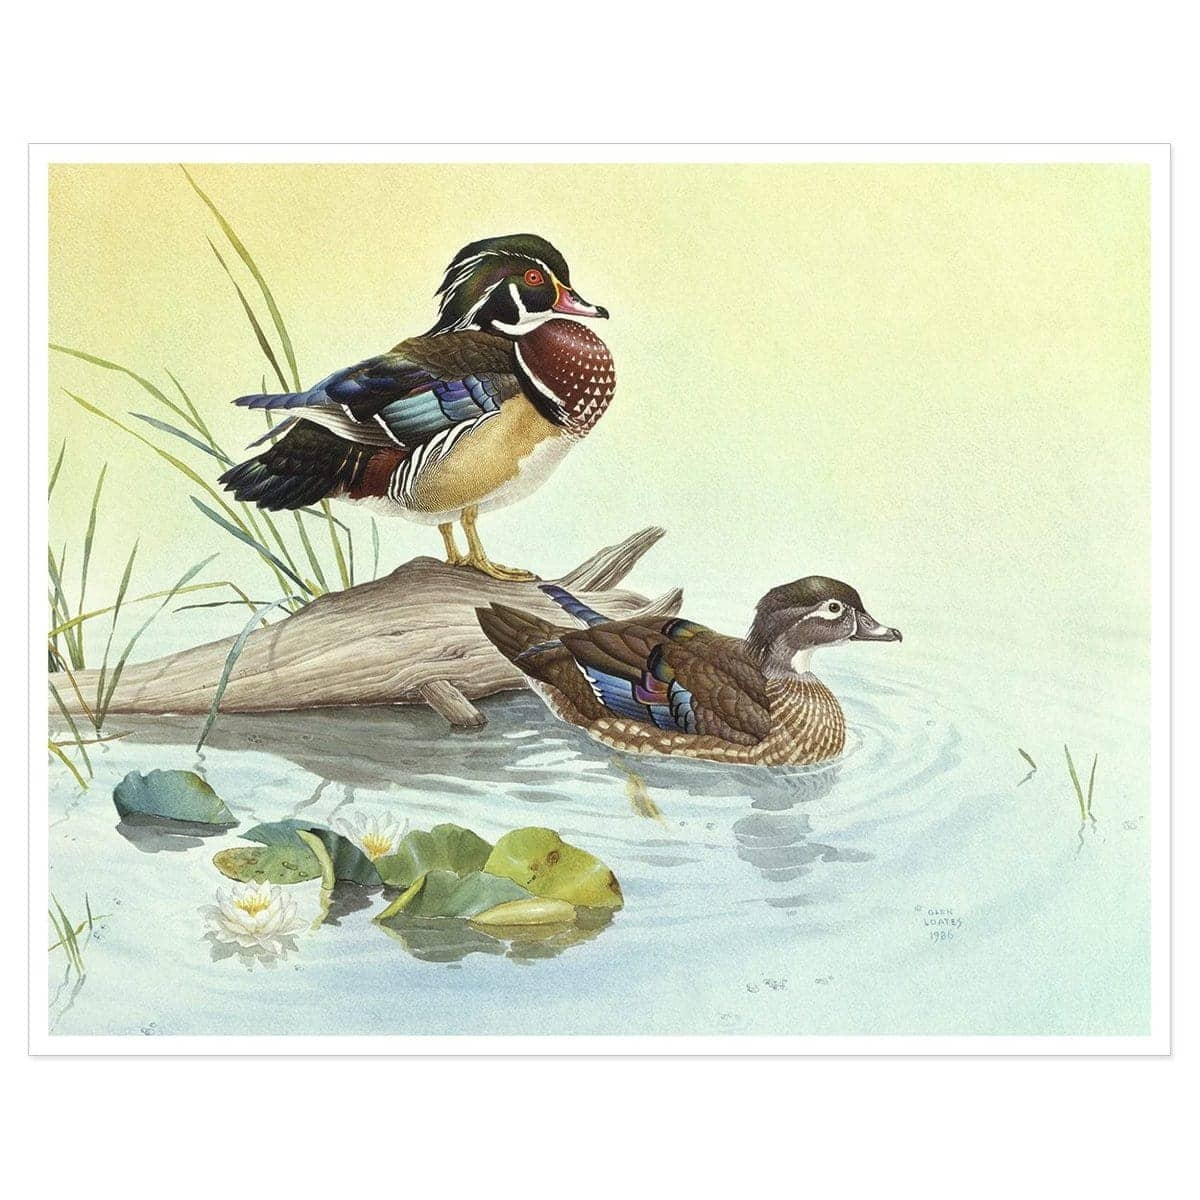 Wood Ducks - Art Print by Glen Loates from the Glen Loates Store